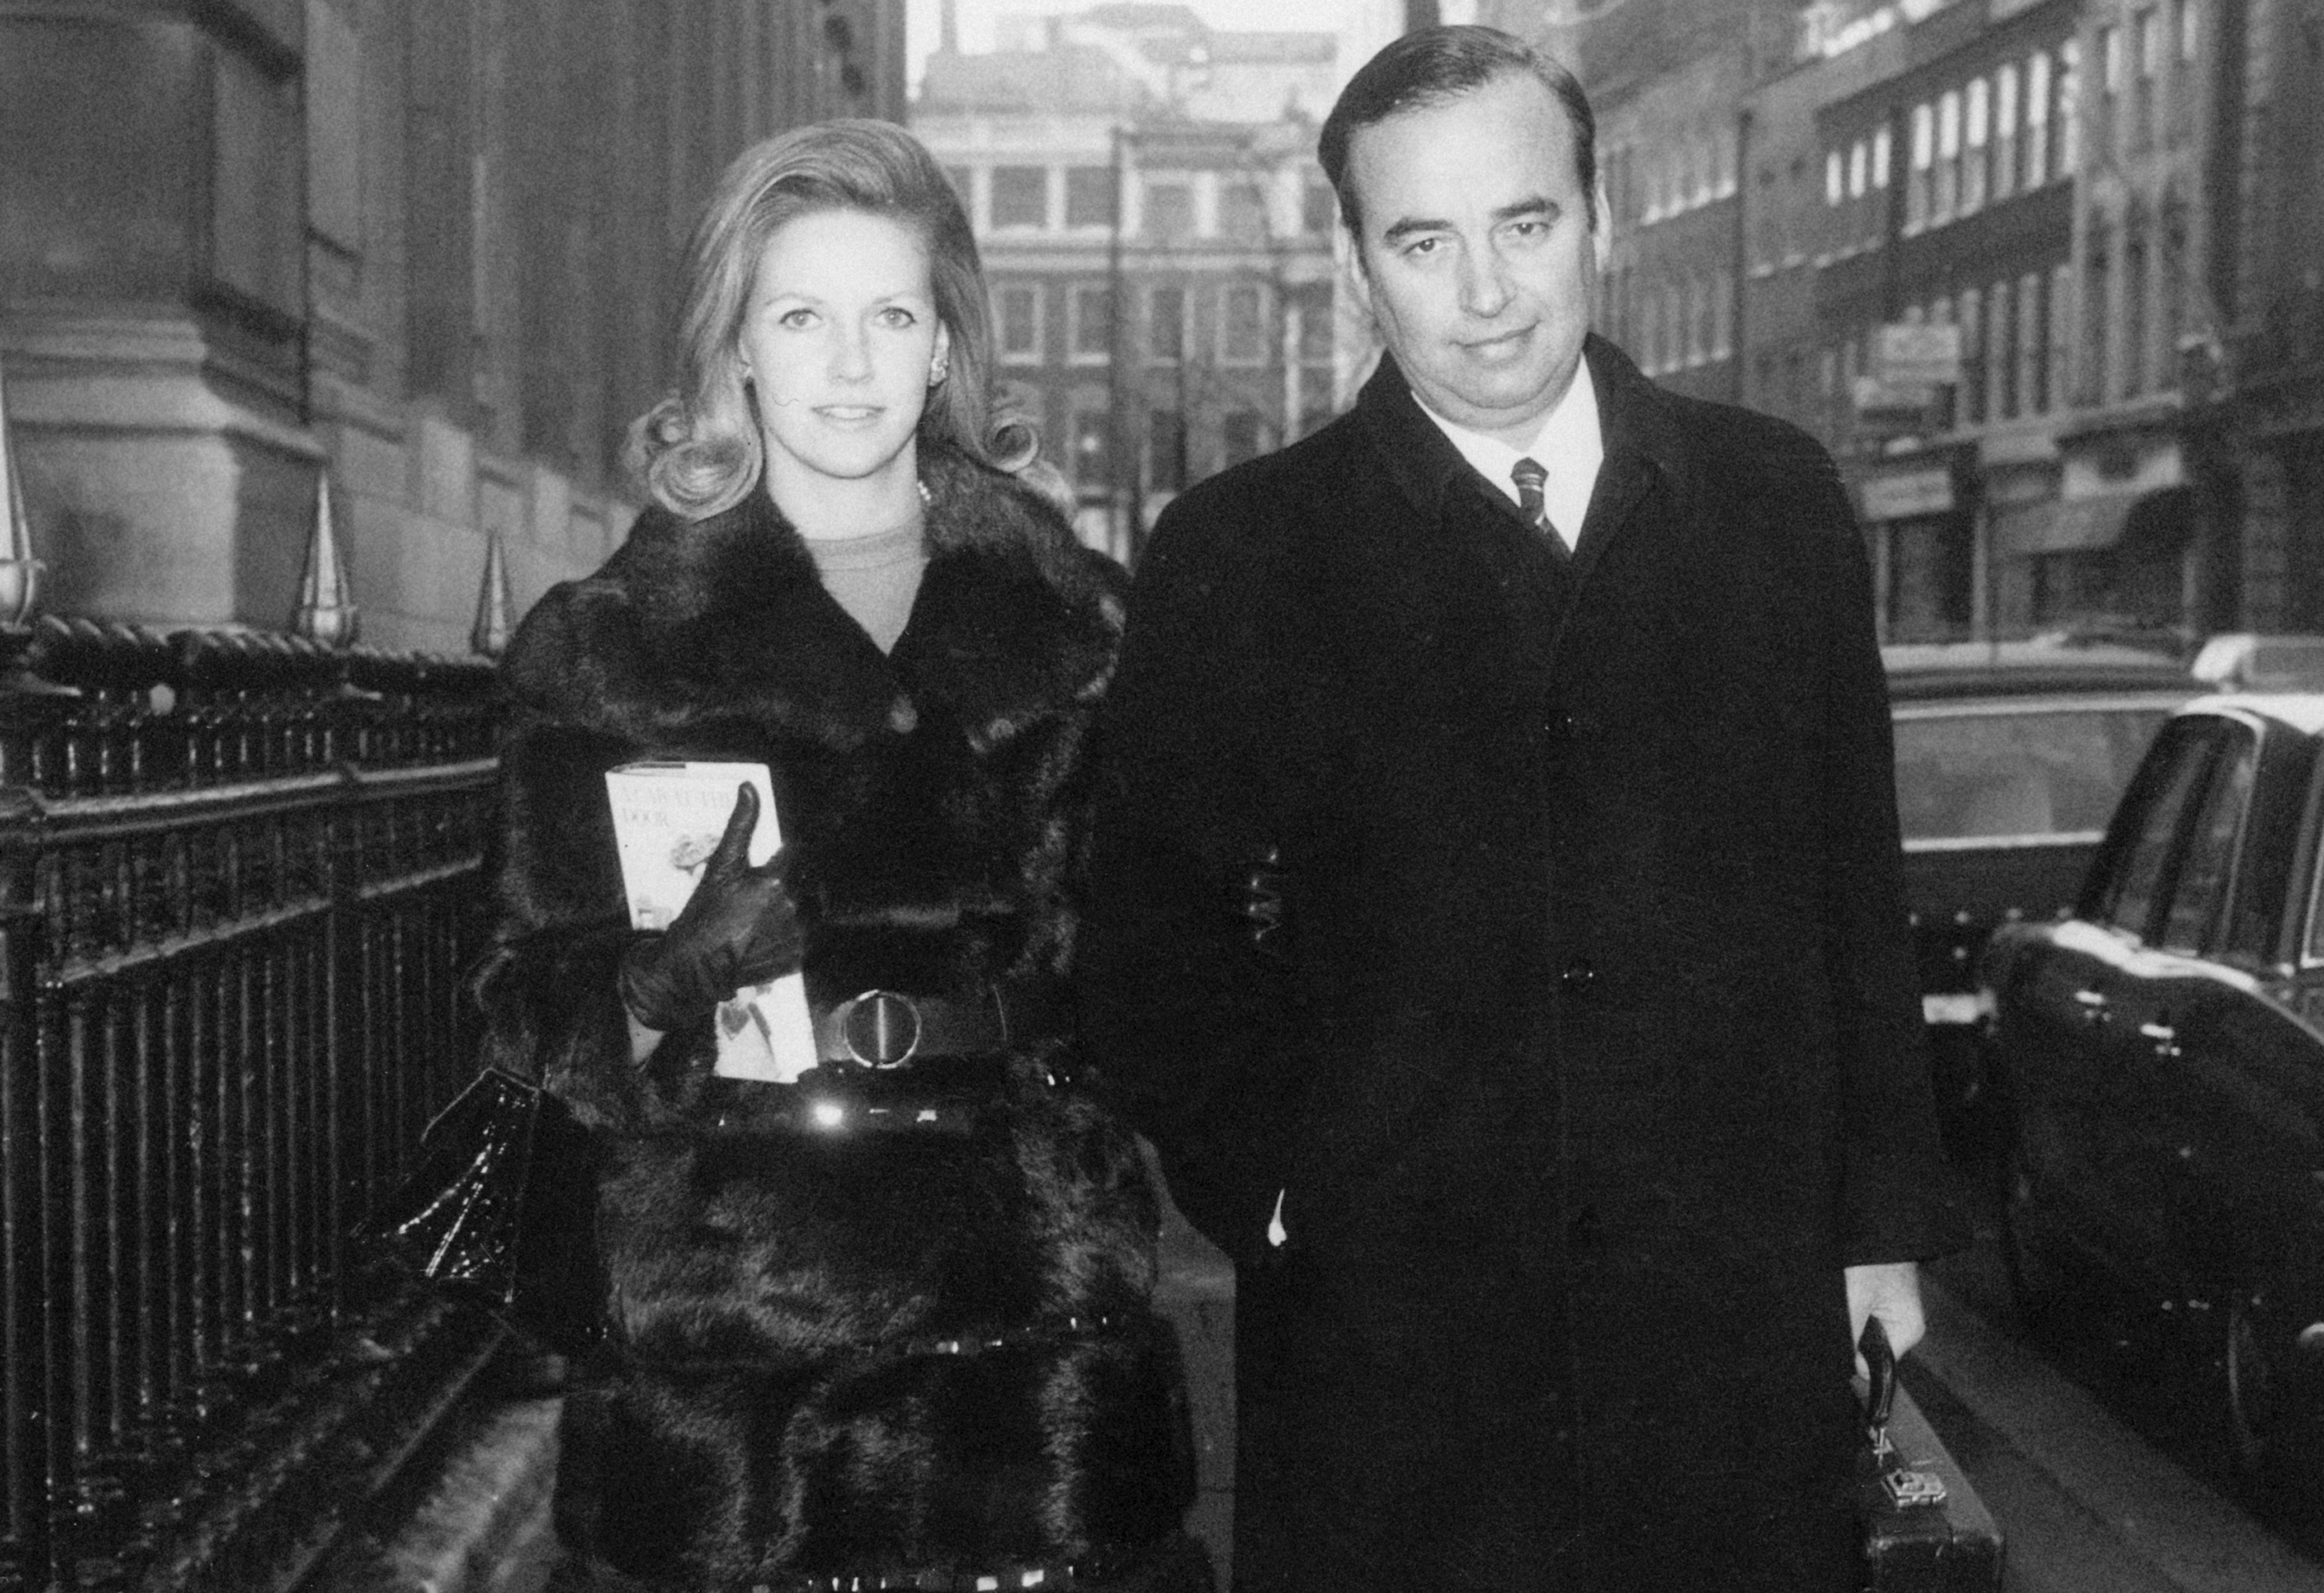 1Australian media mogul Rupert Murdoch arriving at the Connaught Rooms, London, with his second wife Anna Torv